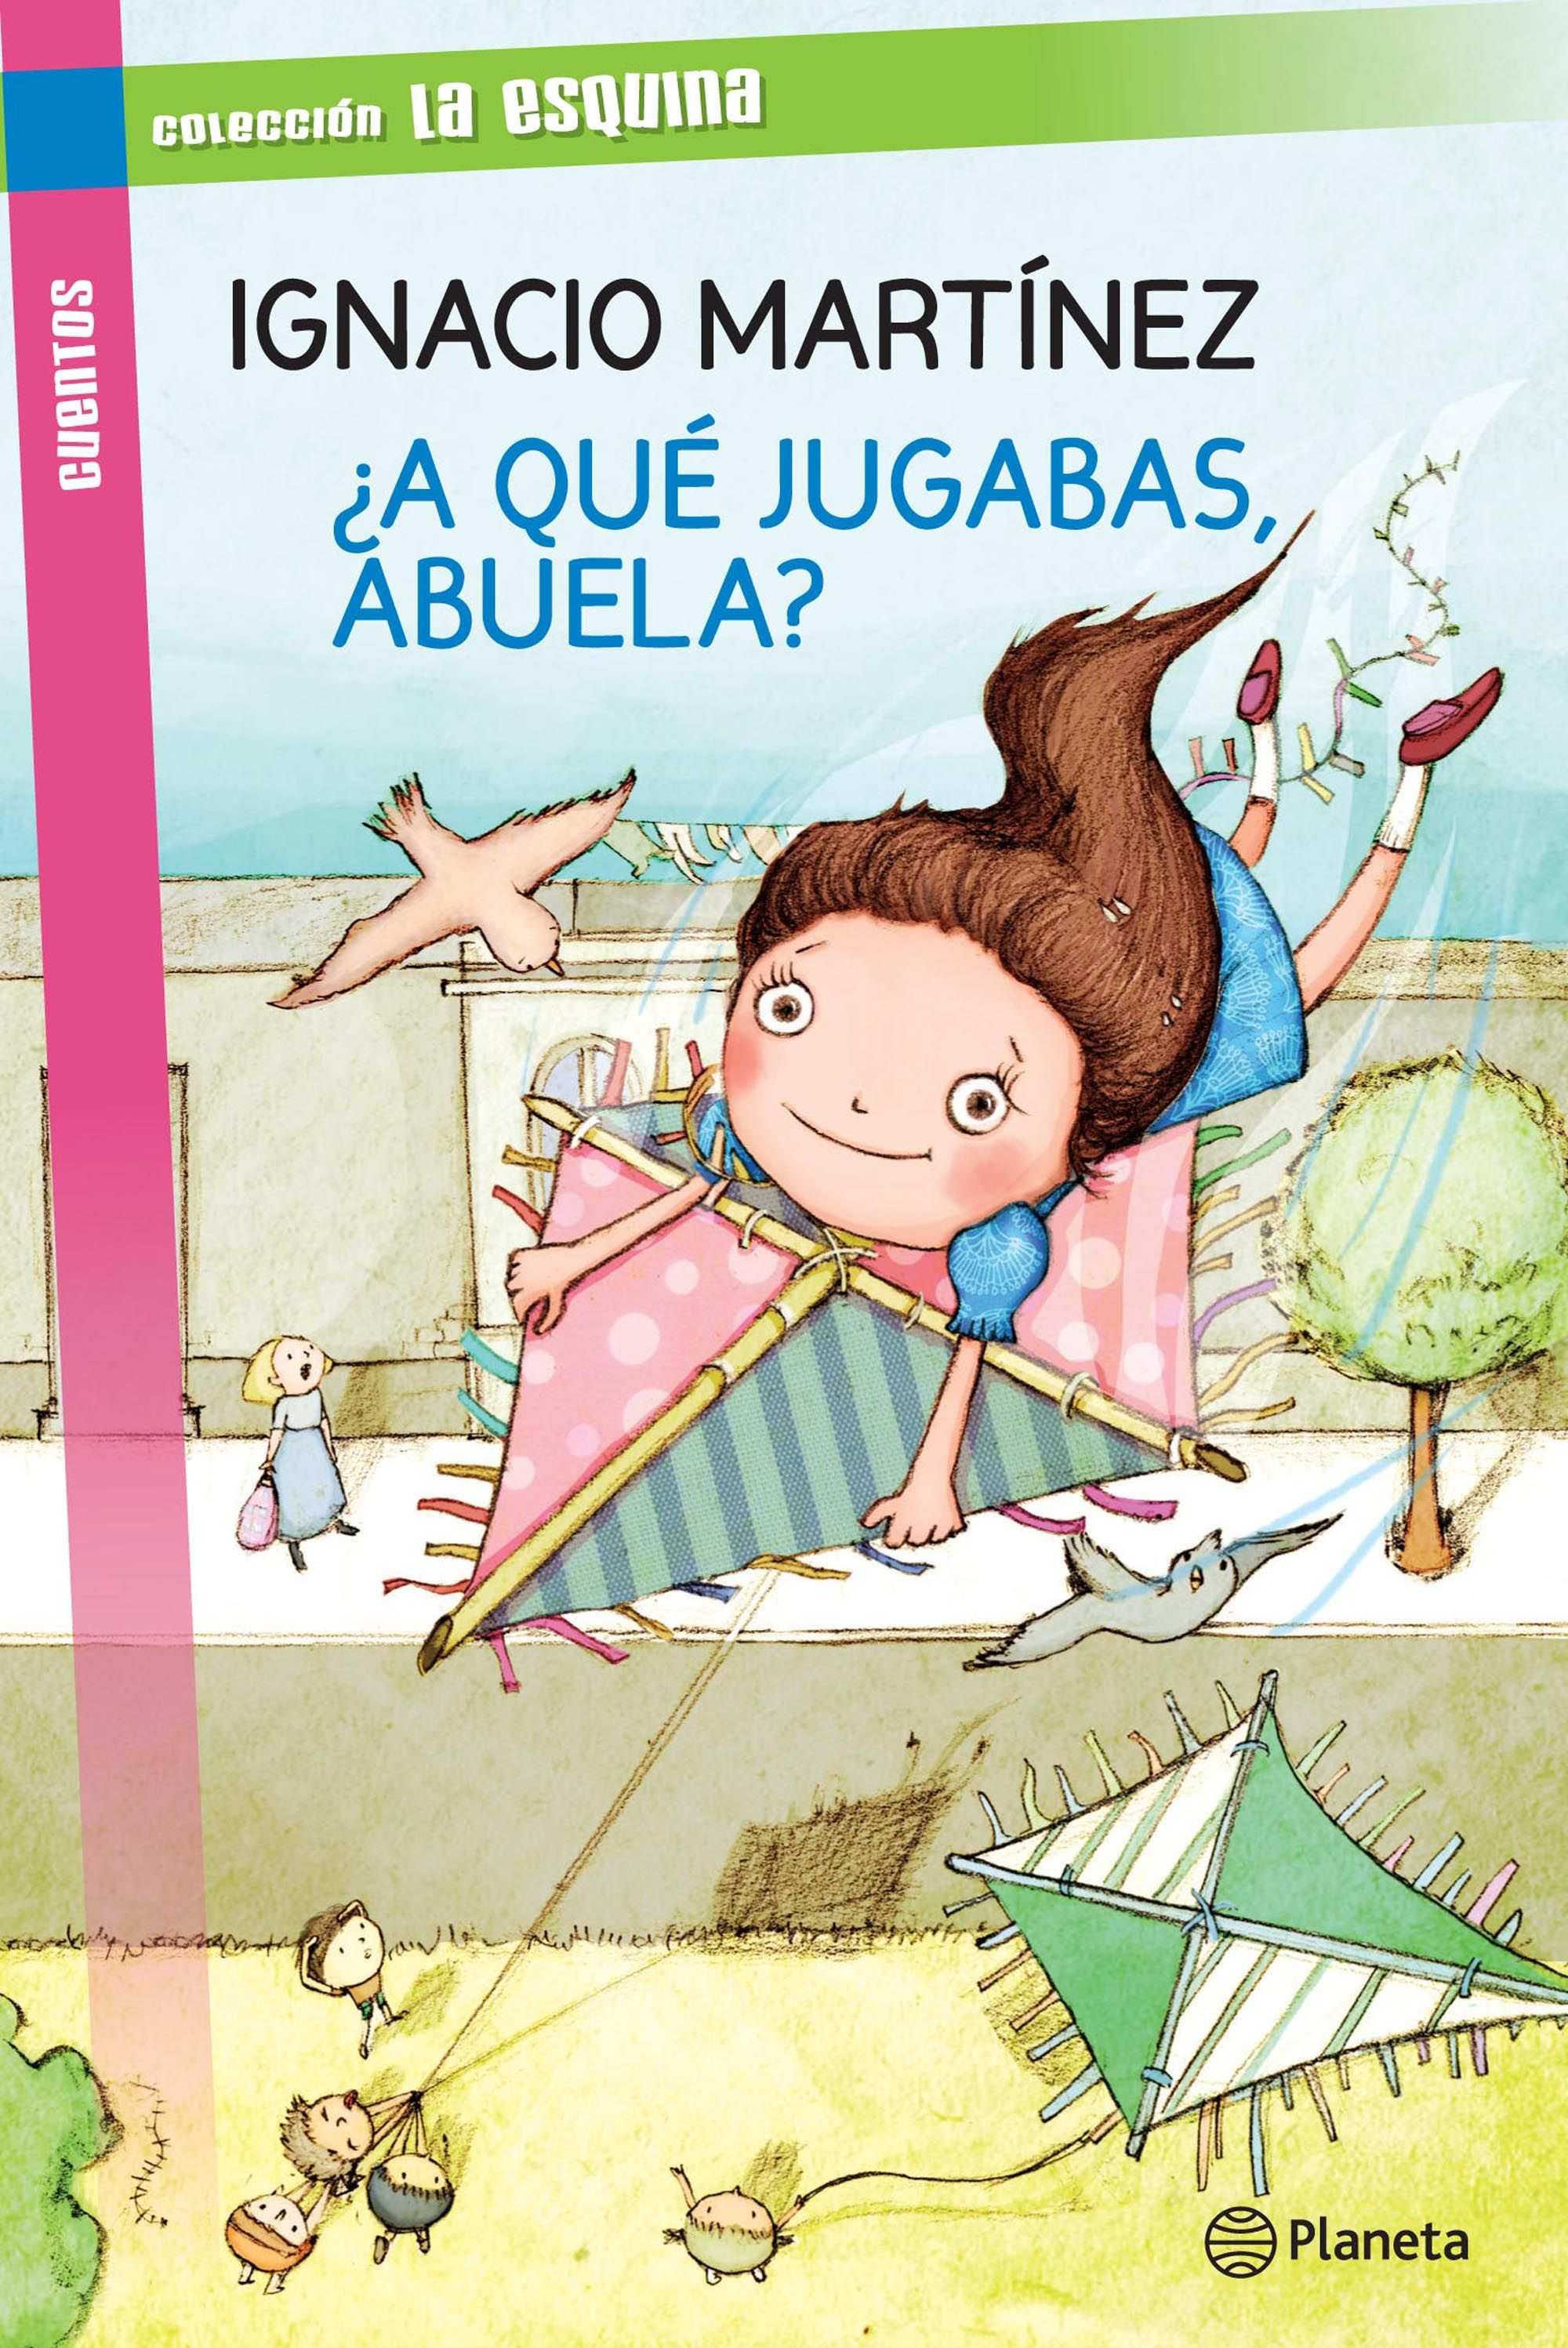 Cover of A que jugabas abuela? depicting a young girl in a blue dress riding on the back of a pink and green kite.